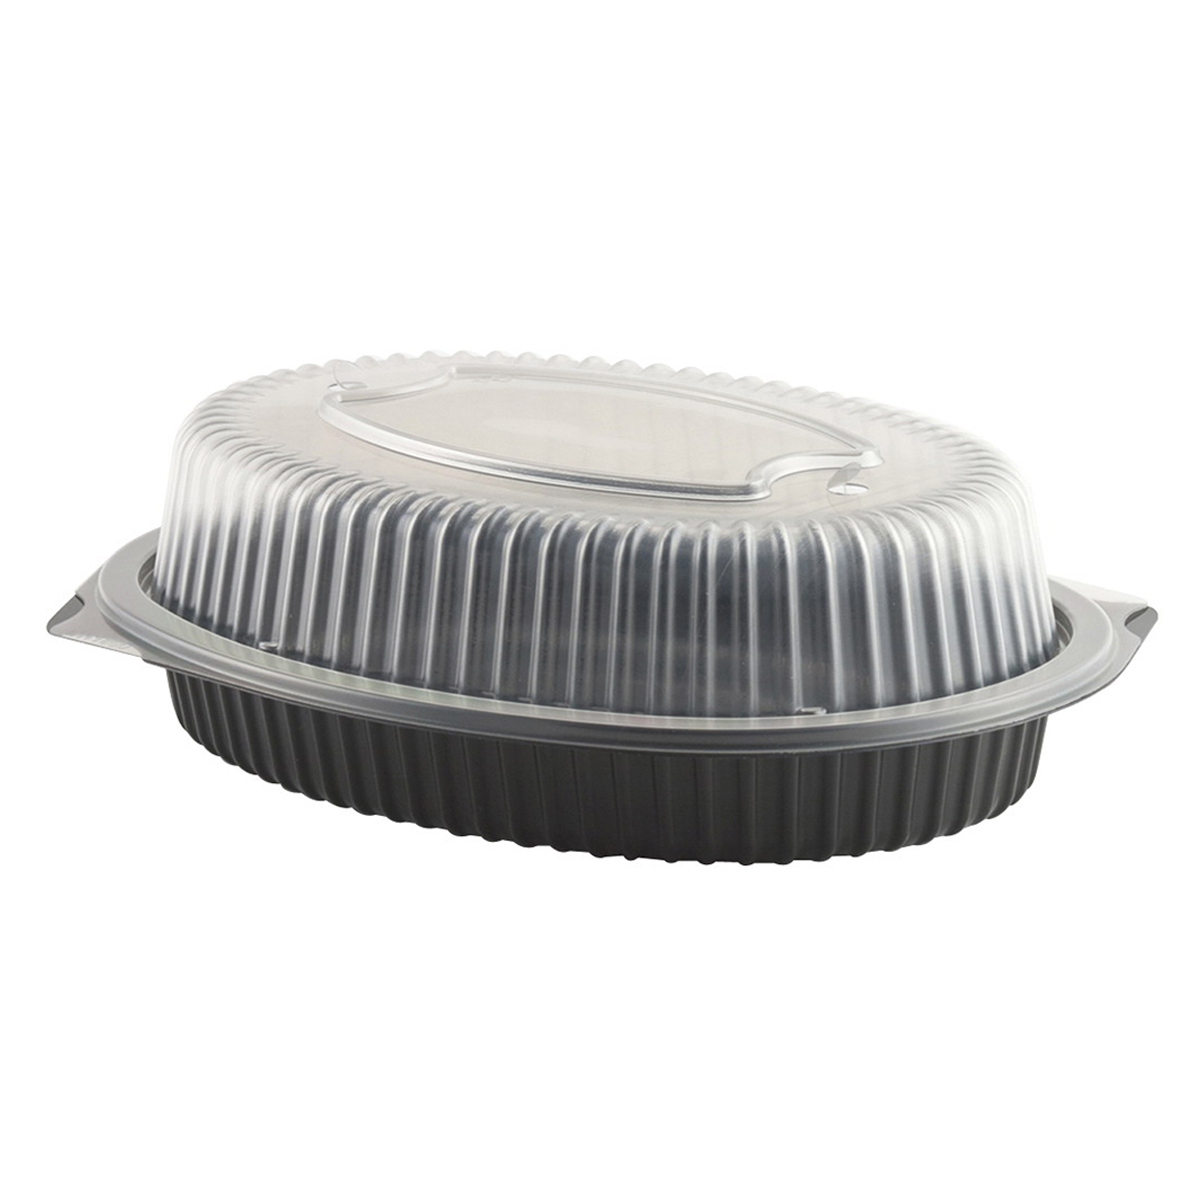 "Anchor Packaging Microraves Roaster Polypropylene Food Container Black/Clear, 10.7"" Length x 7.9"" Width x 3.6"" Depth 